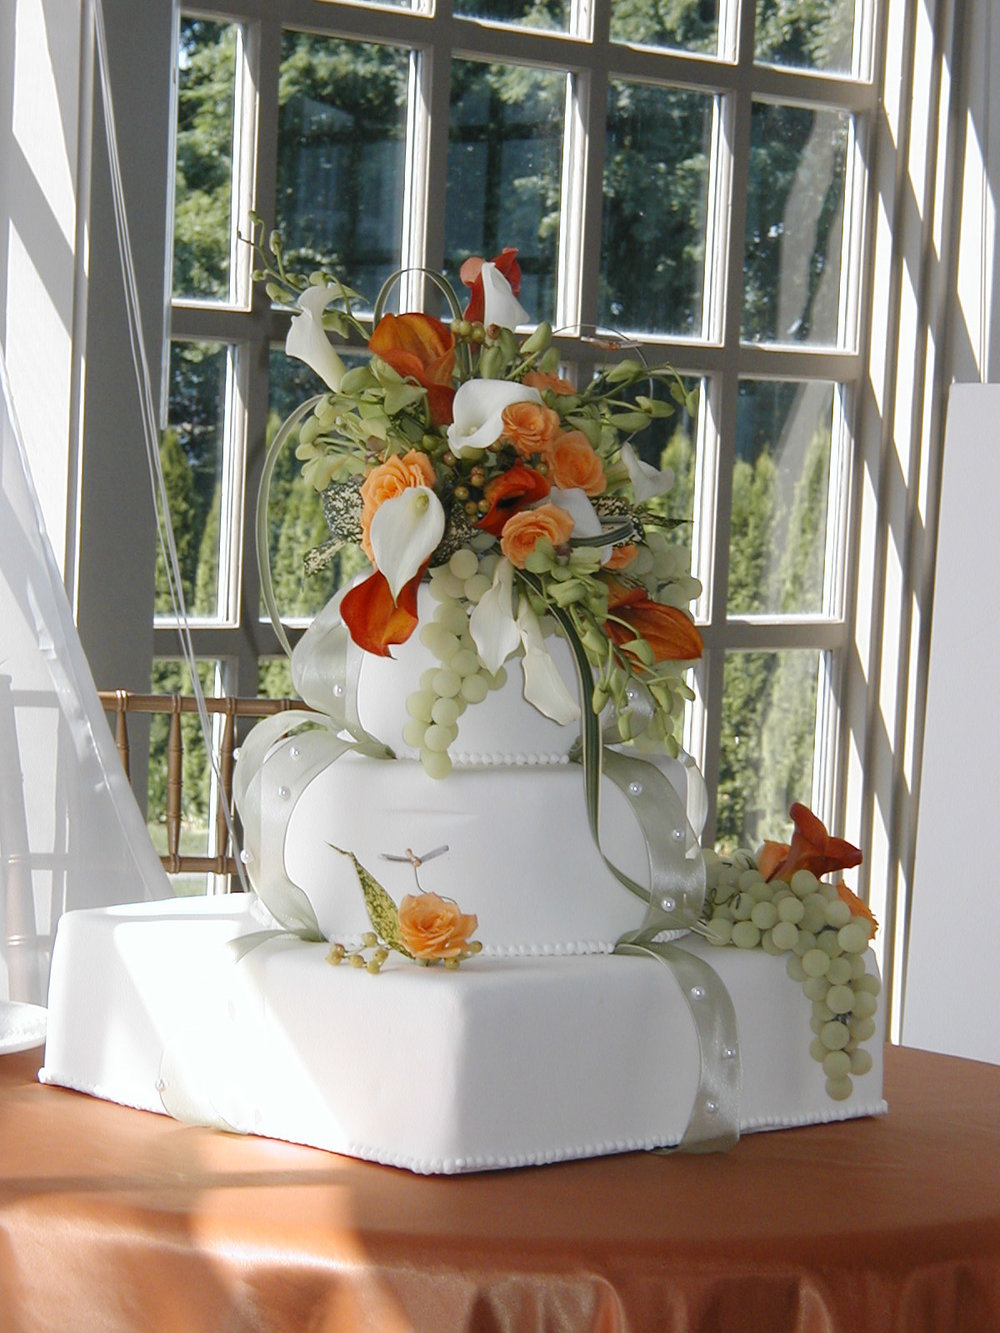 Simple white wedding cake topped with intricate flowers designed by Bouquets & Beyond